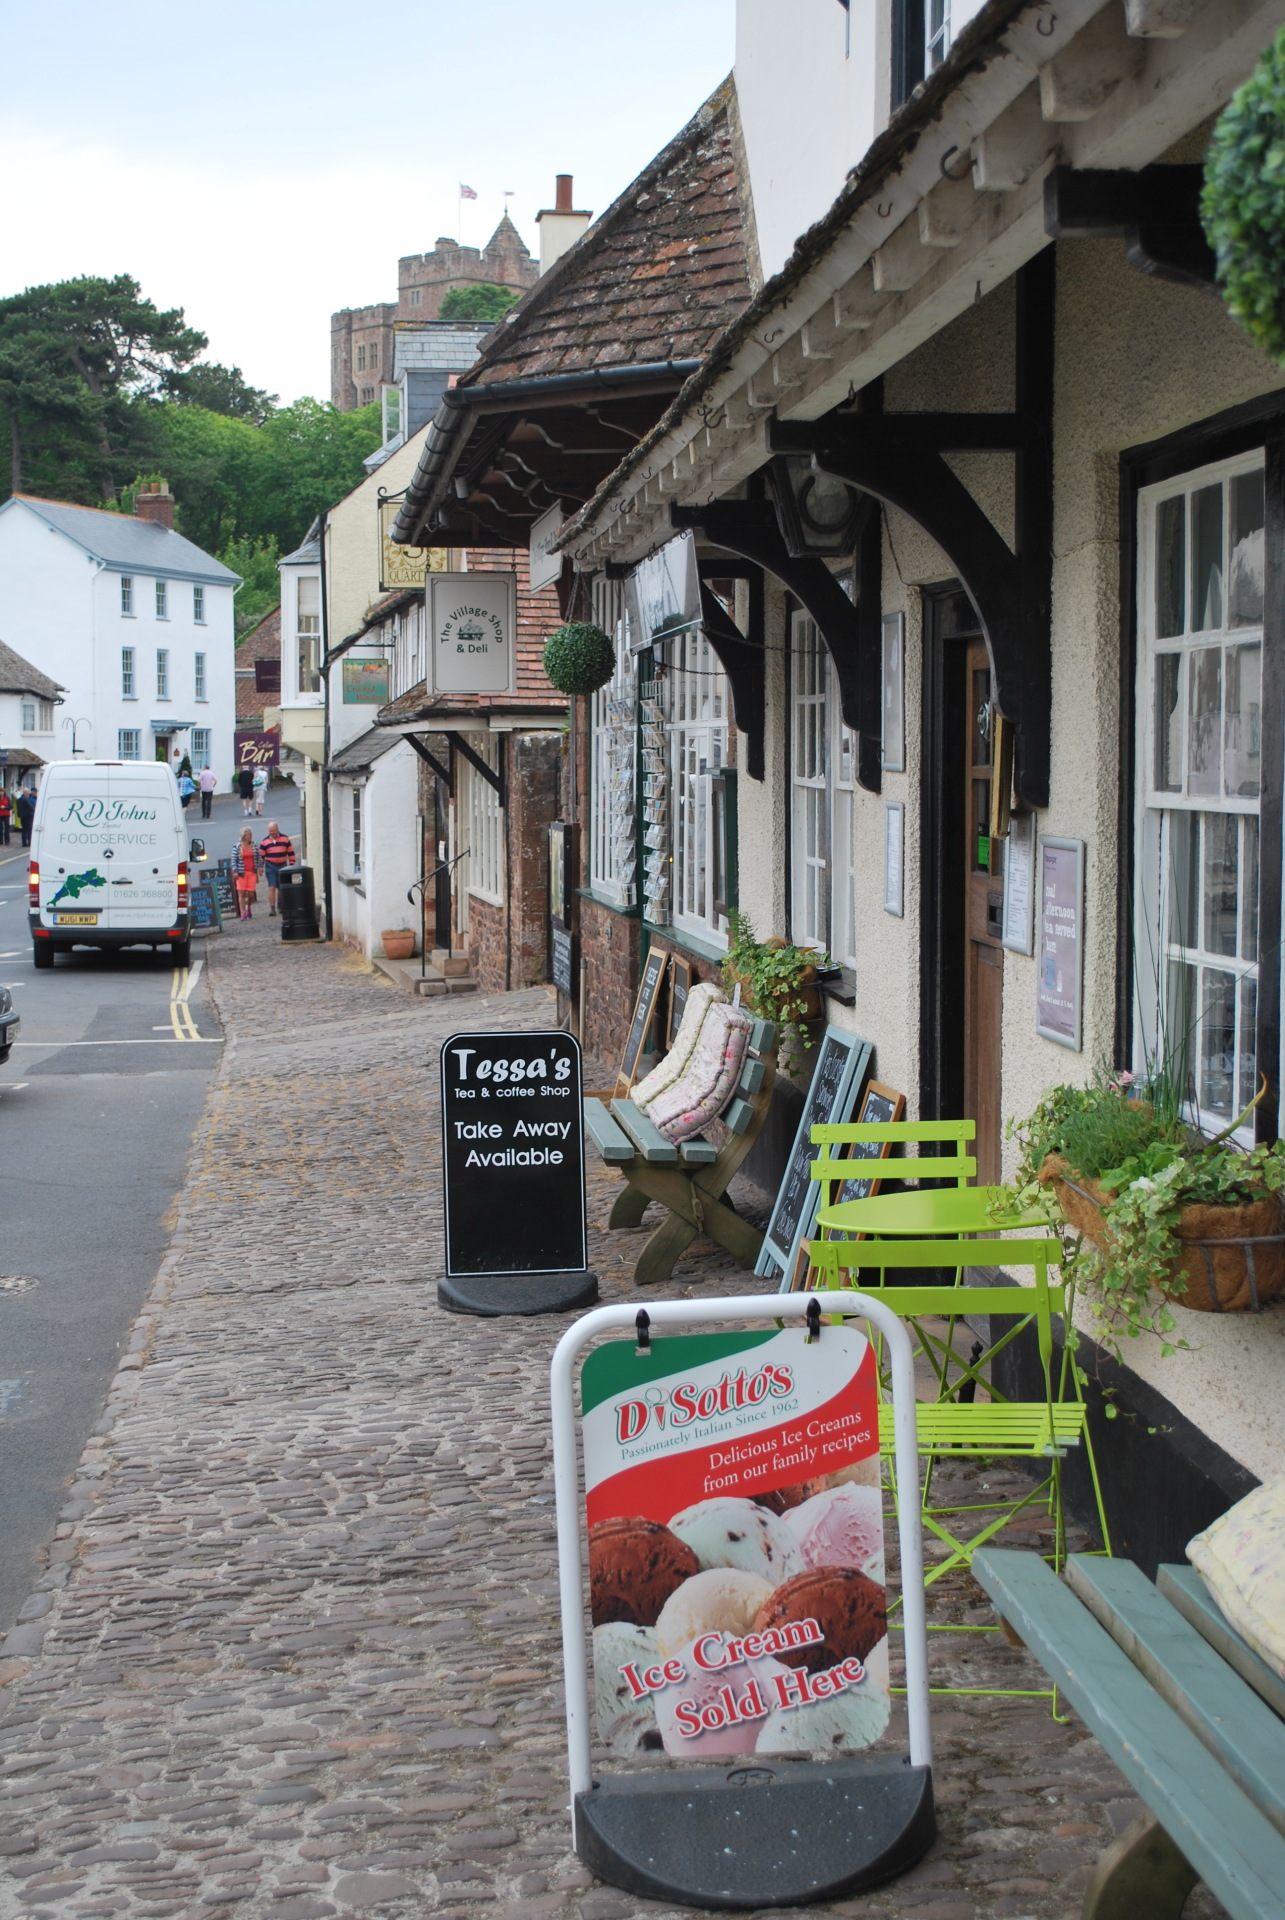 Dunster, beach, hut, salad, days, image, beach, hut, chalet, dunster, beach, clarks village shopping